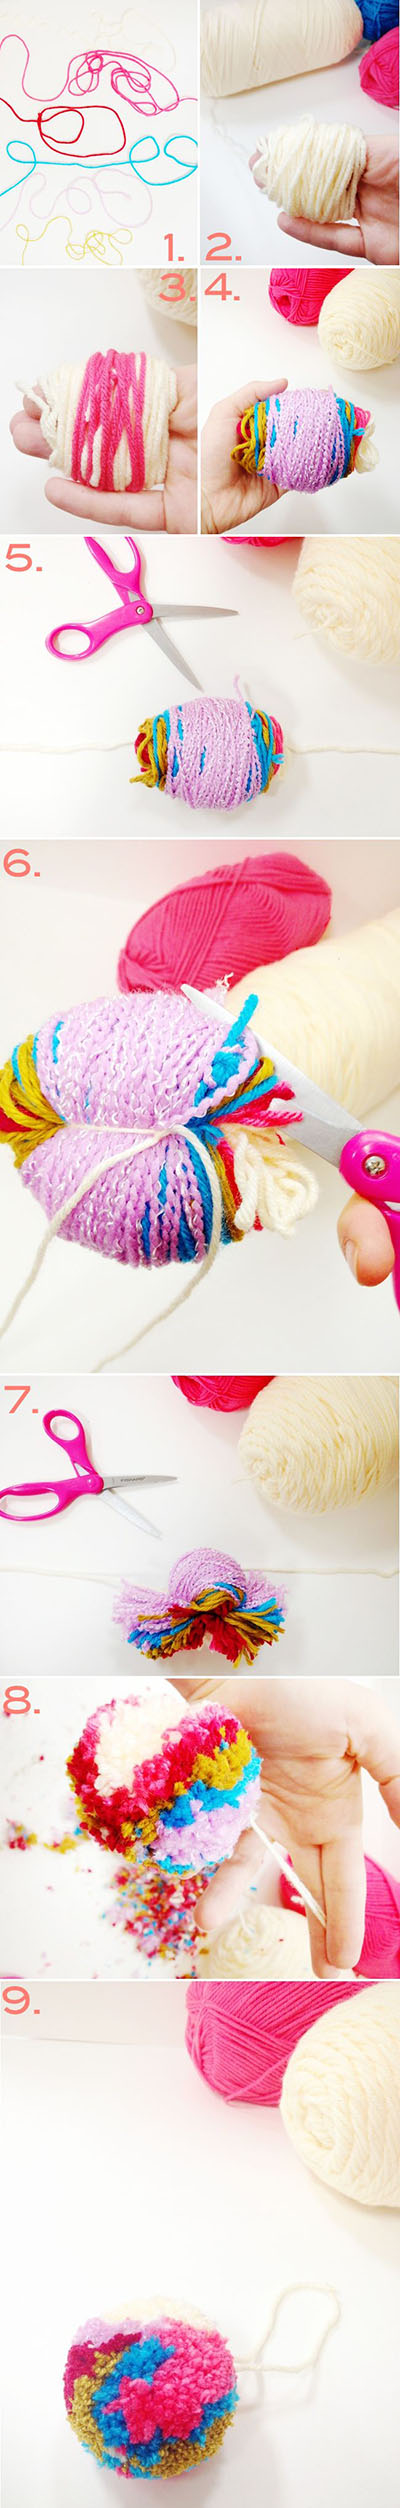 12  colorful yarn pom pomcdf9